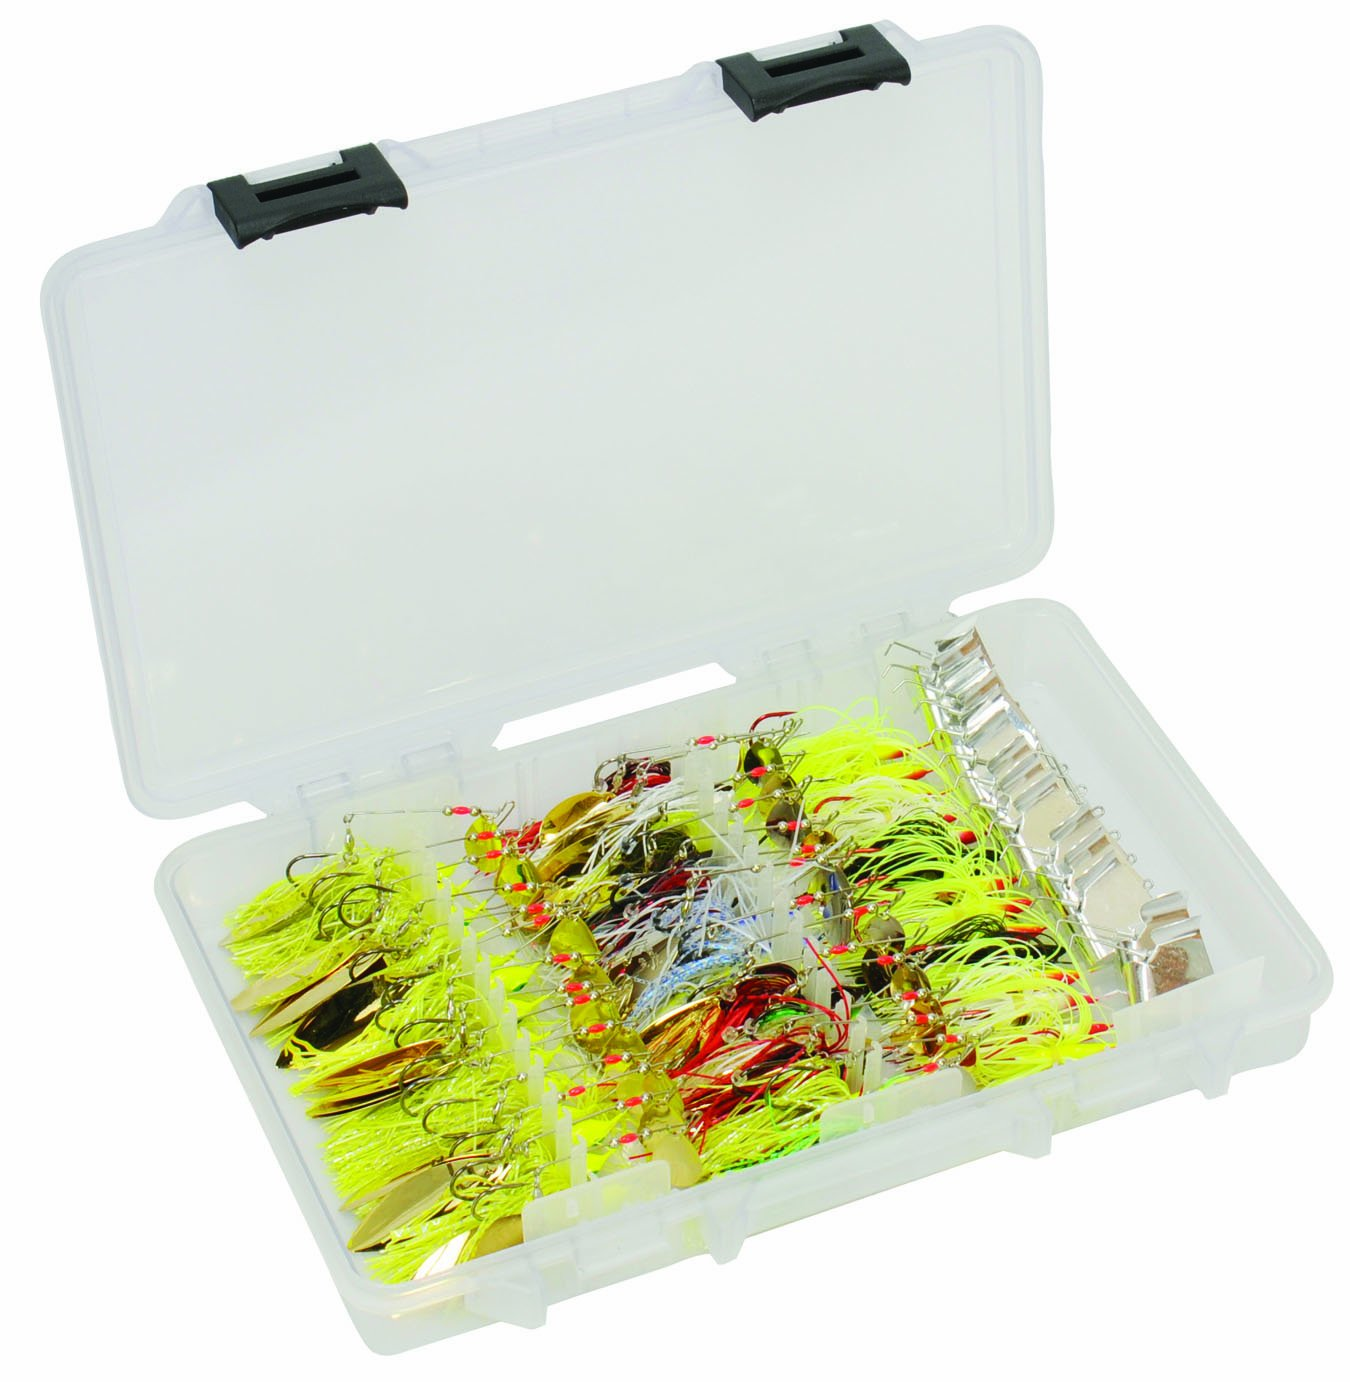 Plano fto spinnerbait buzzbait tackle box 3700 size ebay for Plano fishing tackle boxes